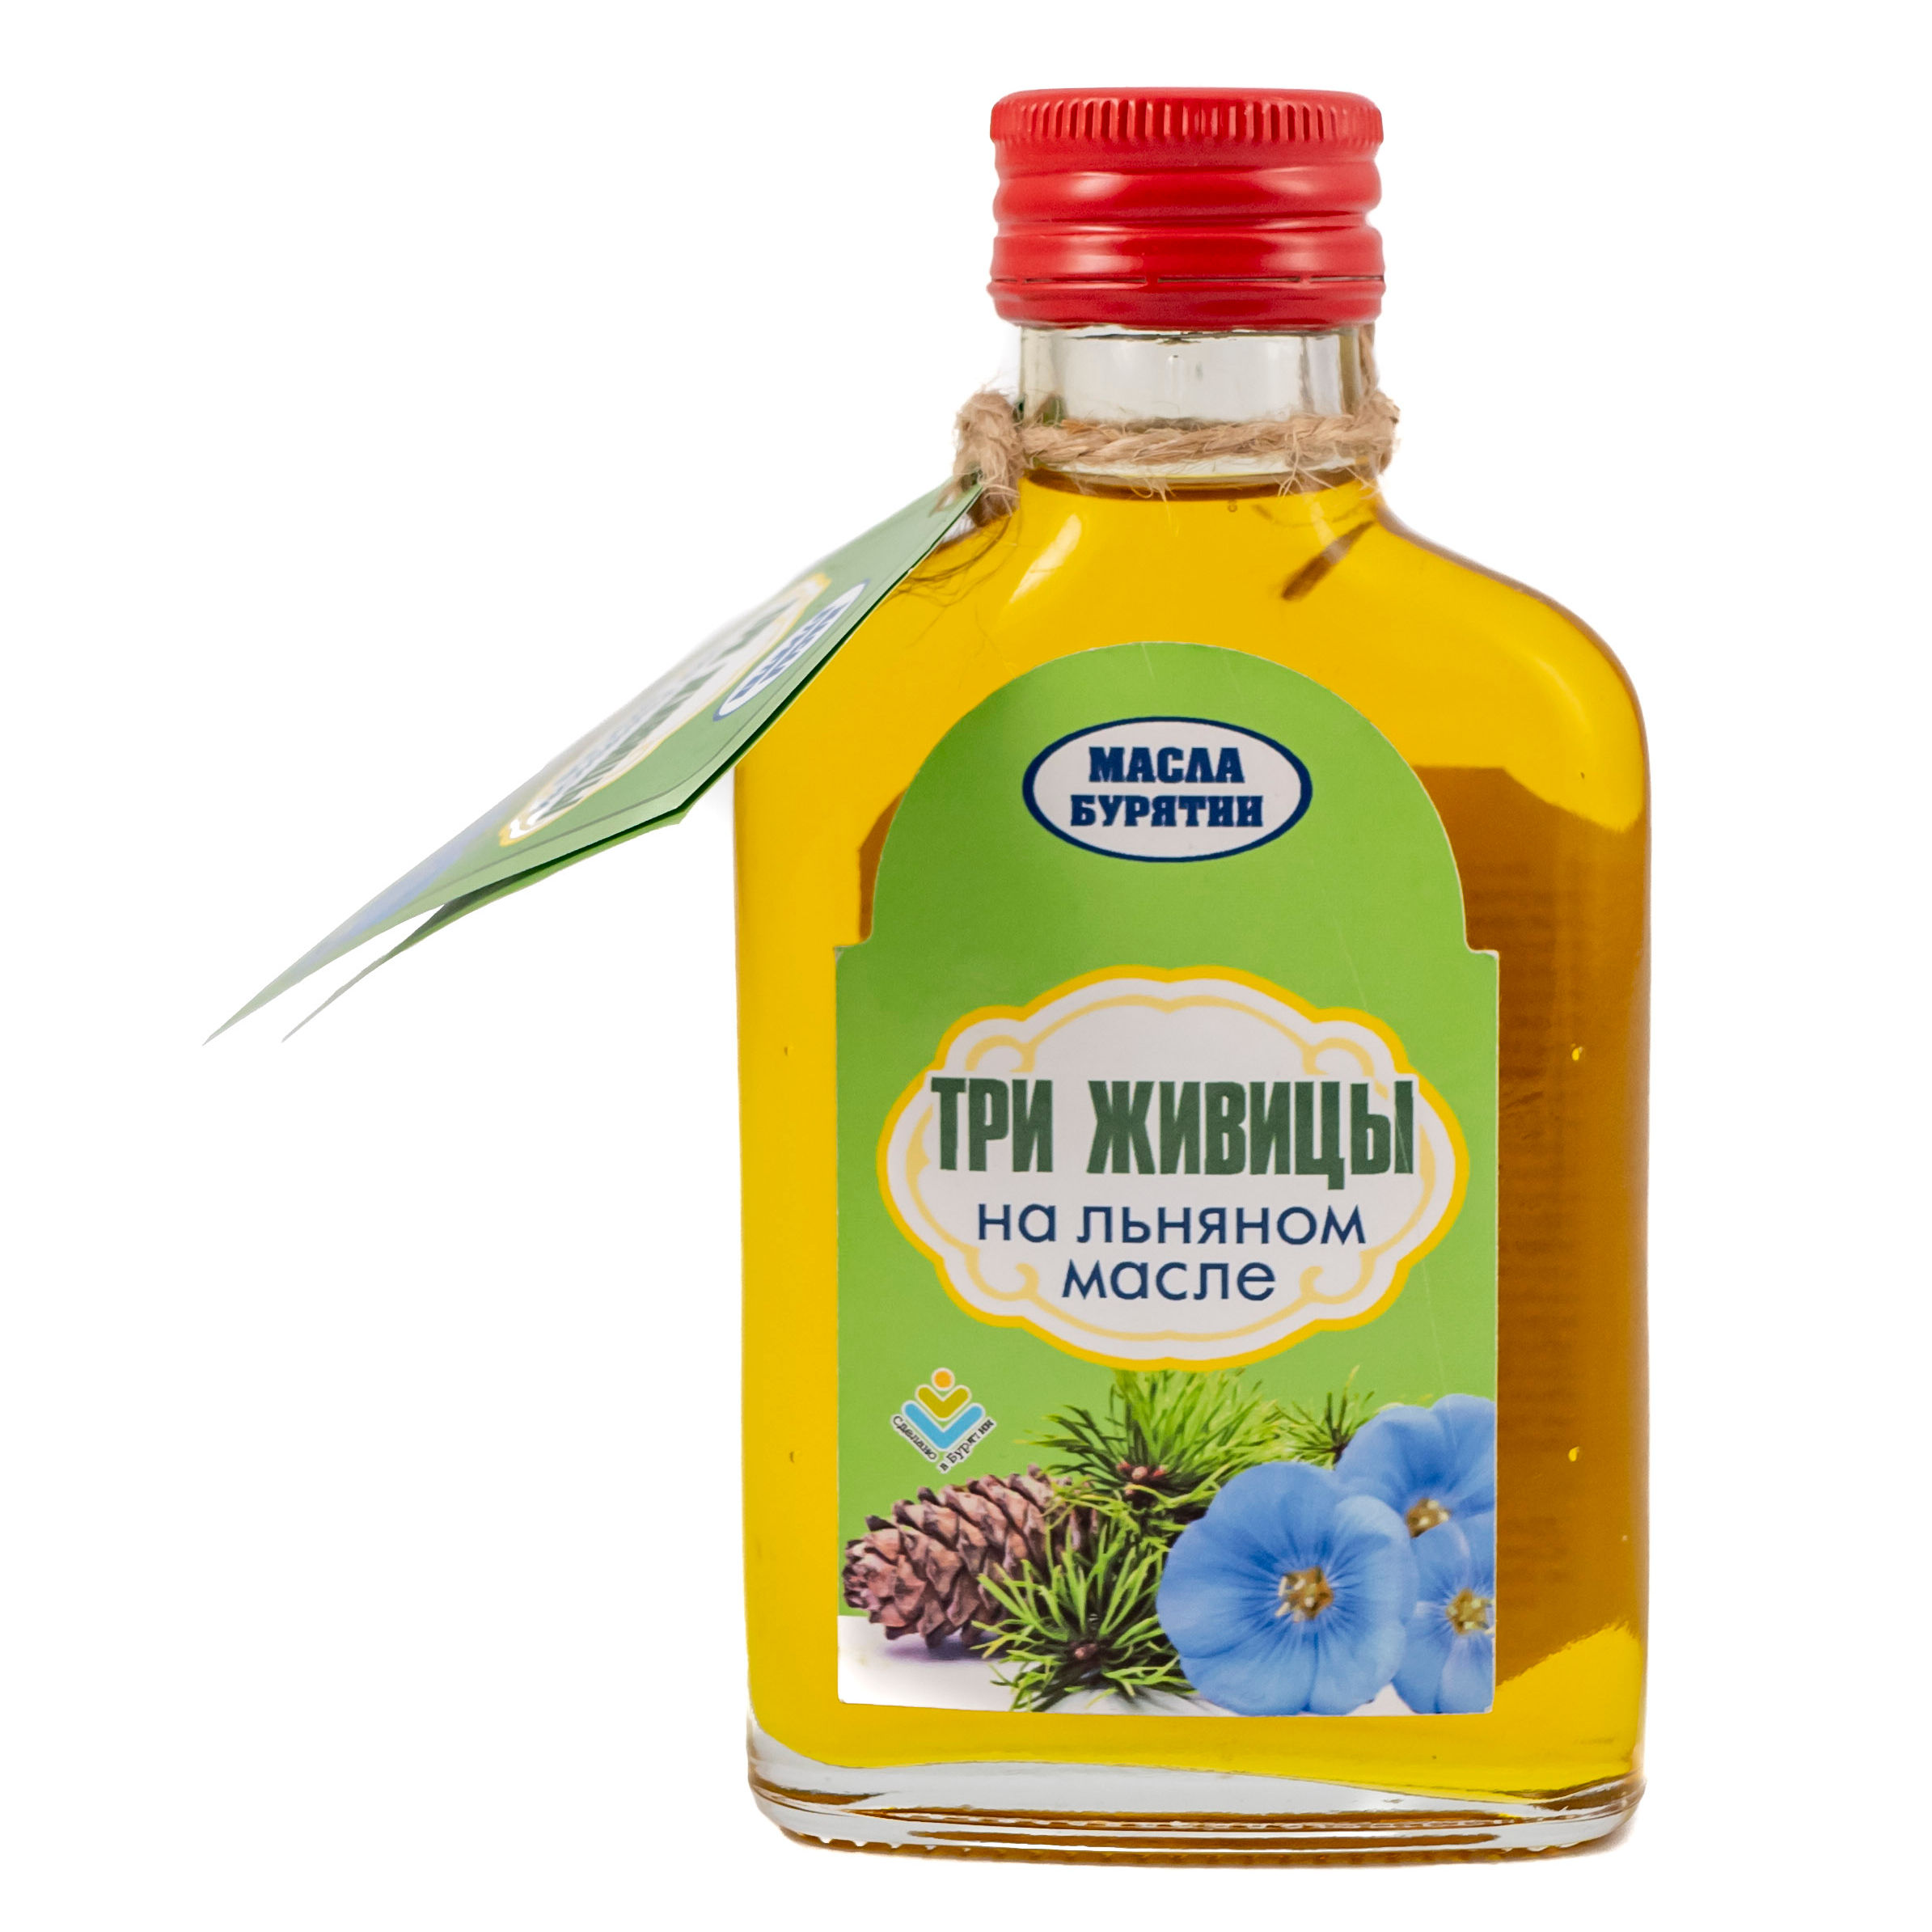 Natural Organic Three sap on linseed oil Cooking And Body Oil